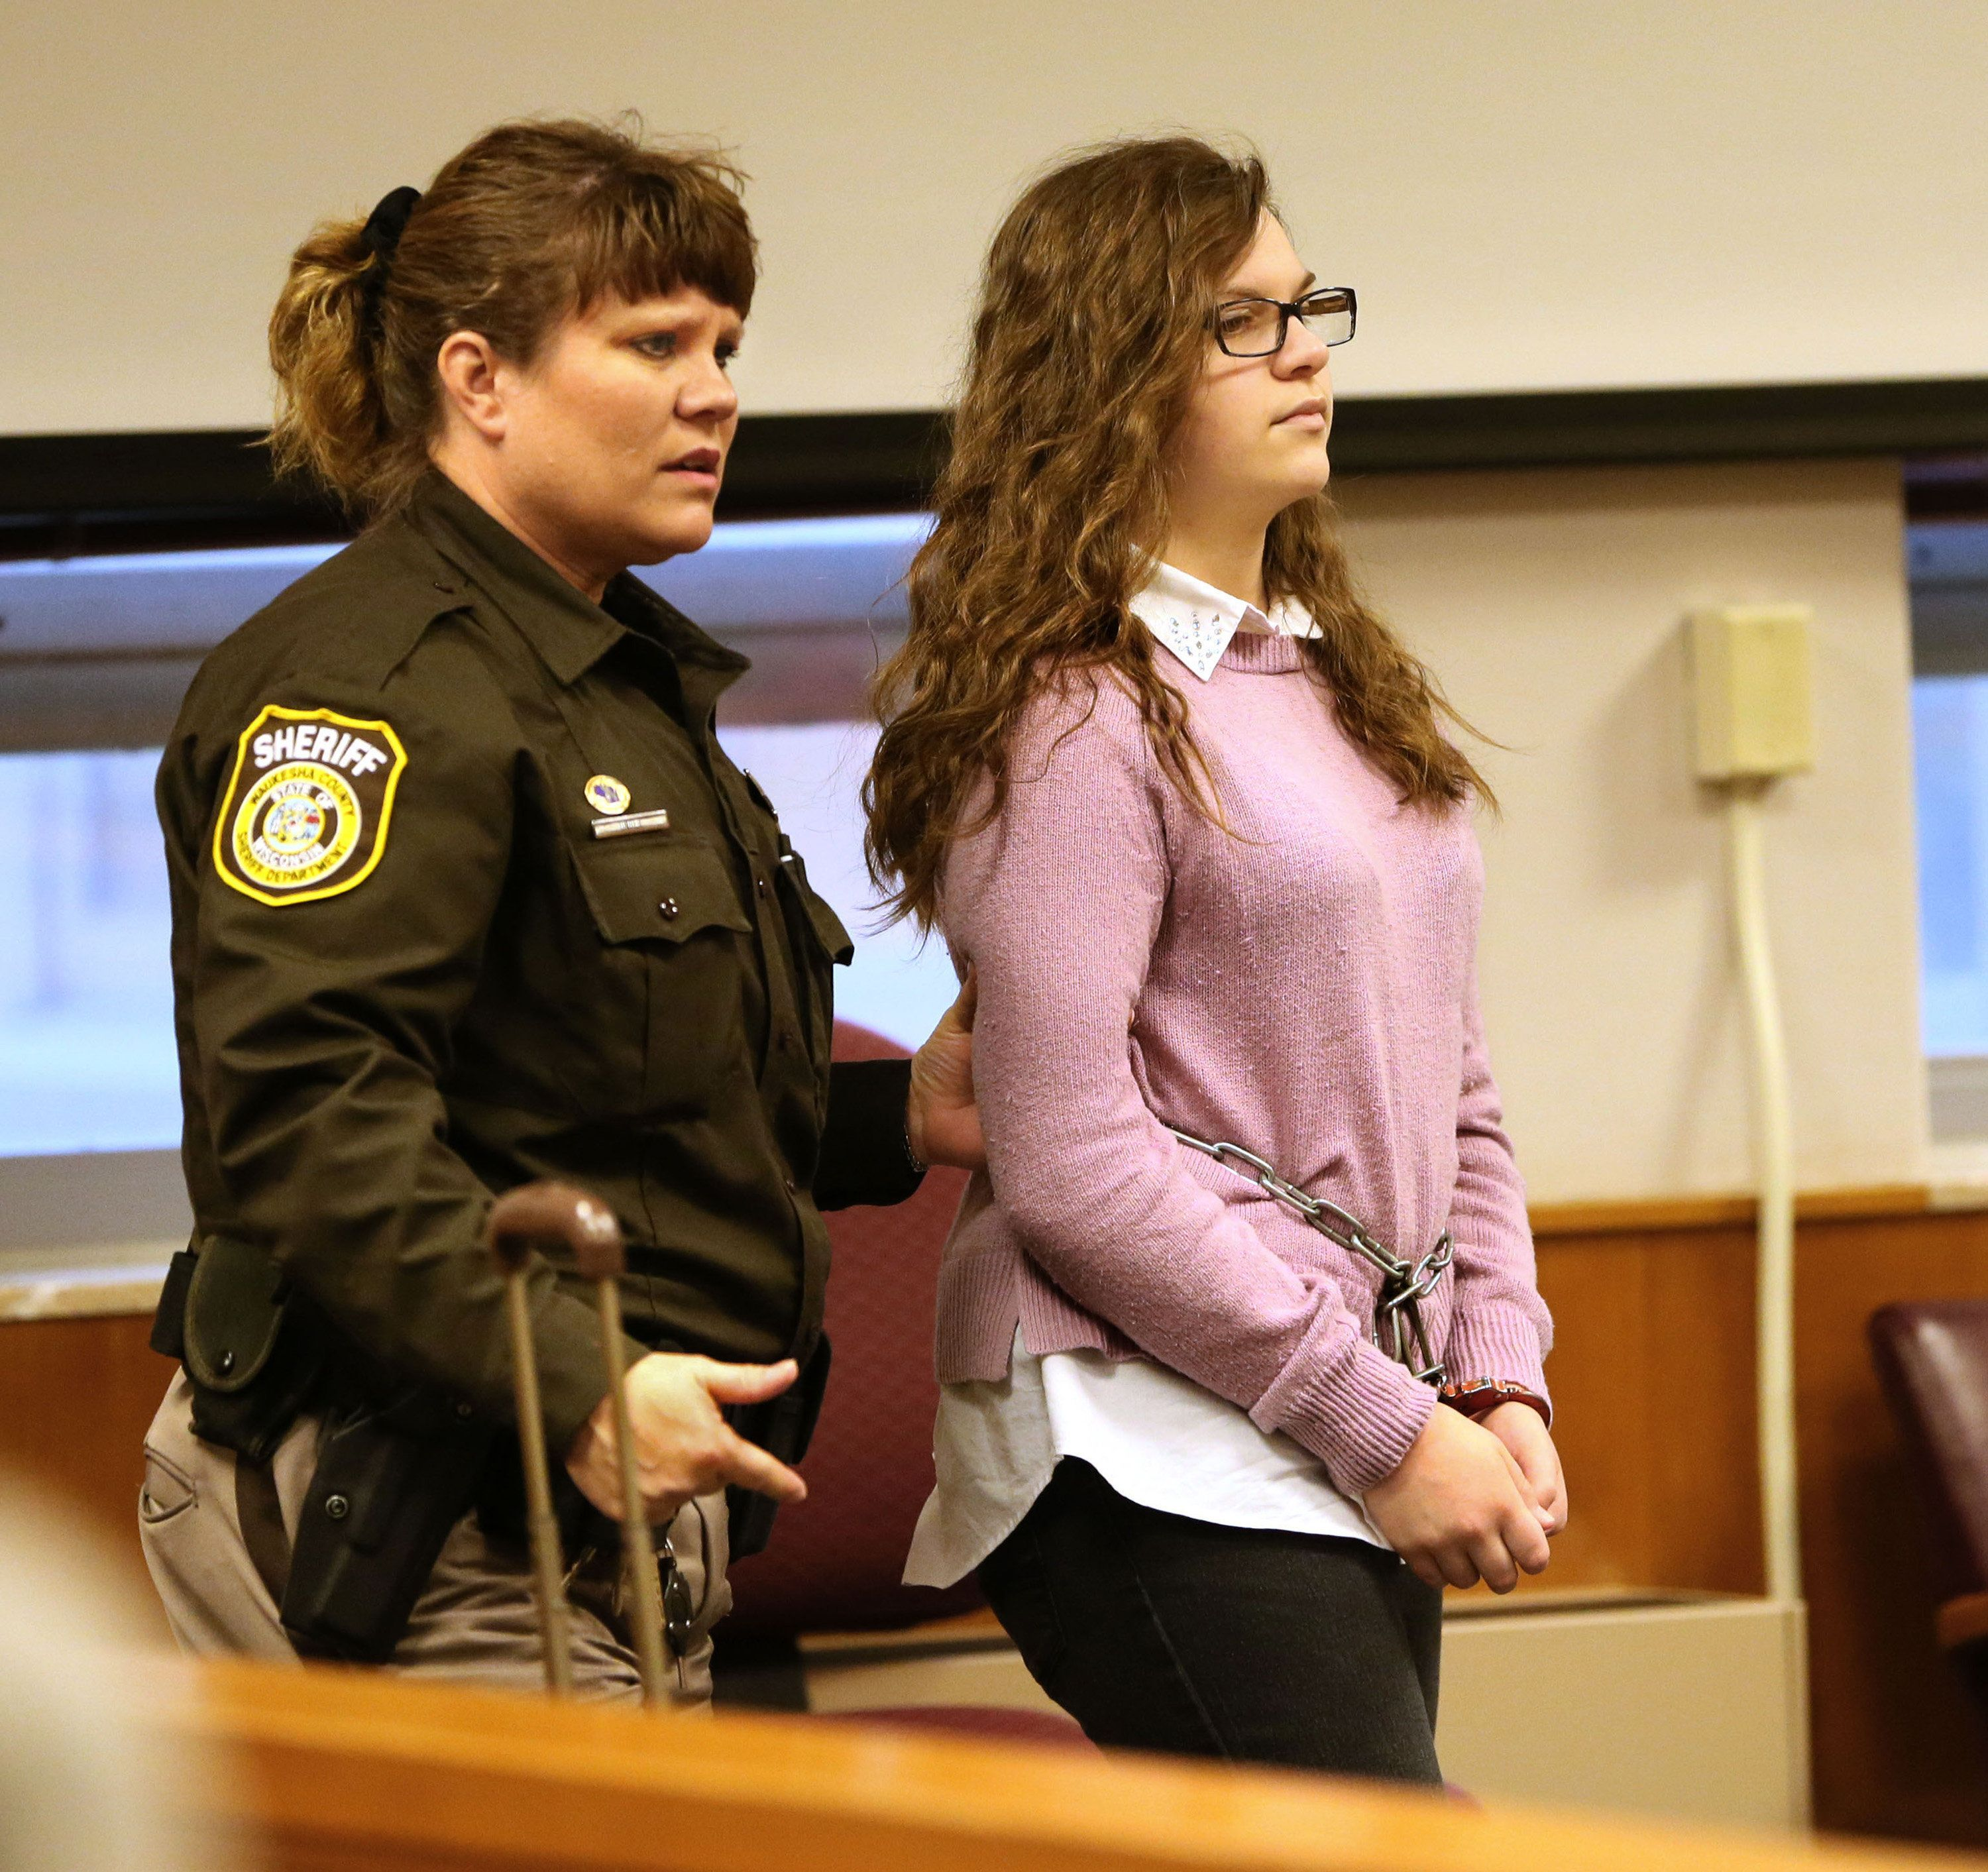 Anissa Weier, accused of being involved in the stabbing of another girl related to the 'Slenderman' online story, is led into the courtroom on Thursday, Dec. 22, 2016 in Waukesha, Wis.  (Michael Sears/Milwaukee Journal Sentinel/TNS via Getty Images)